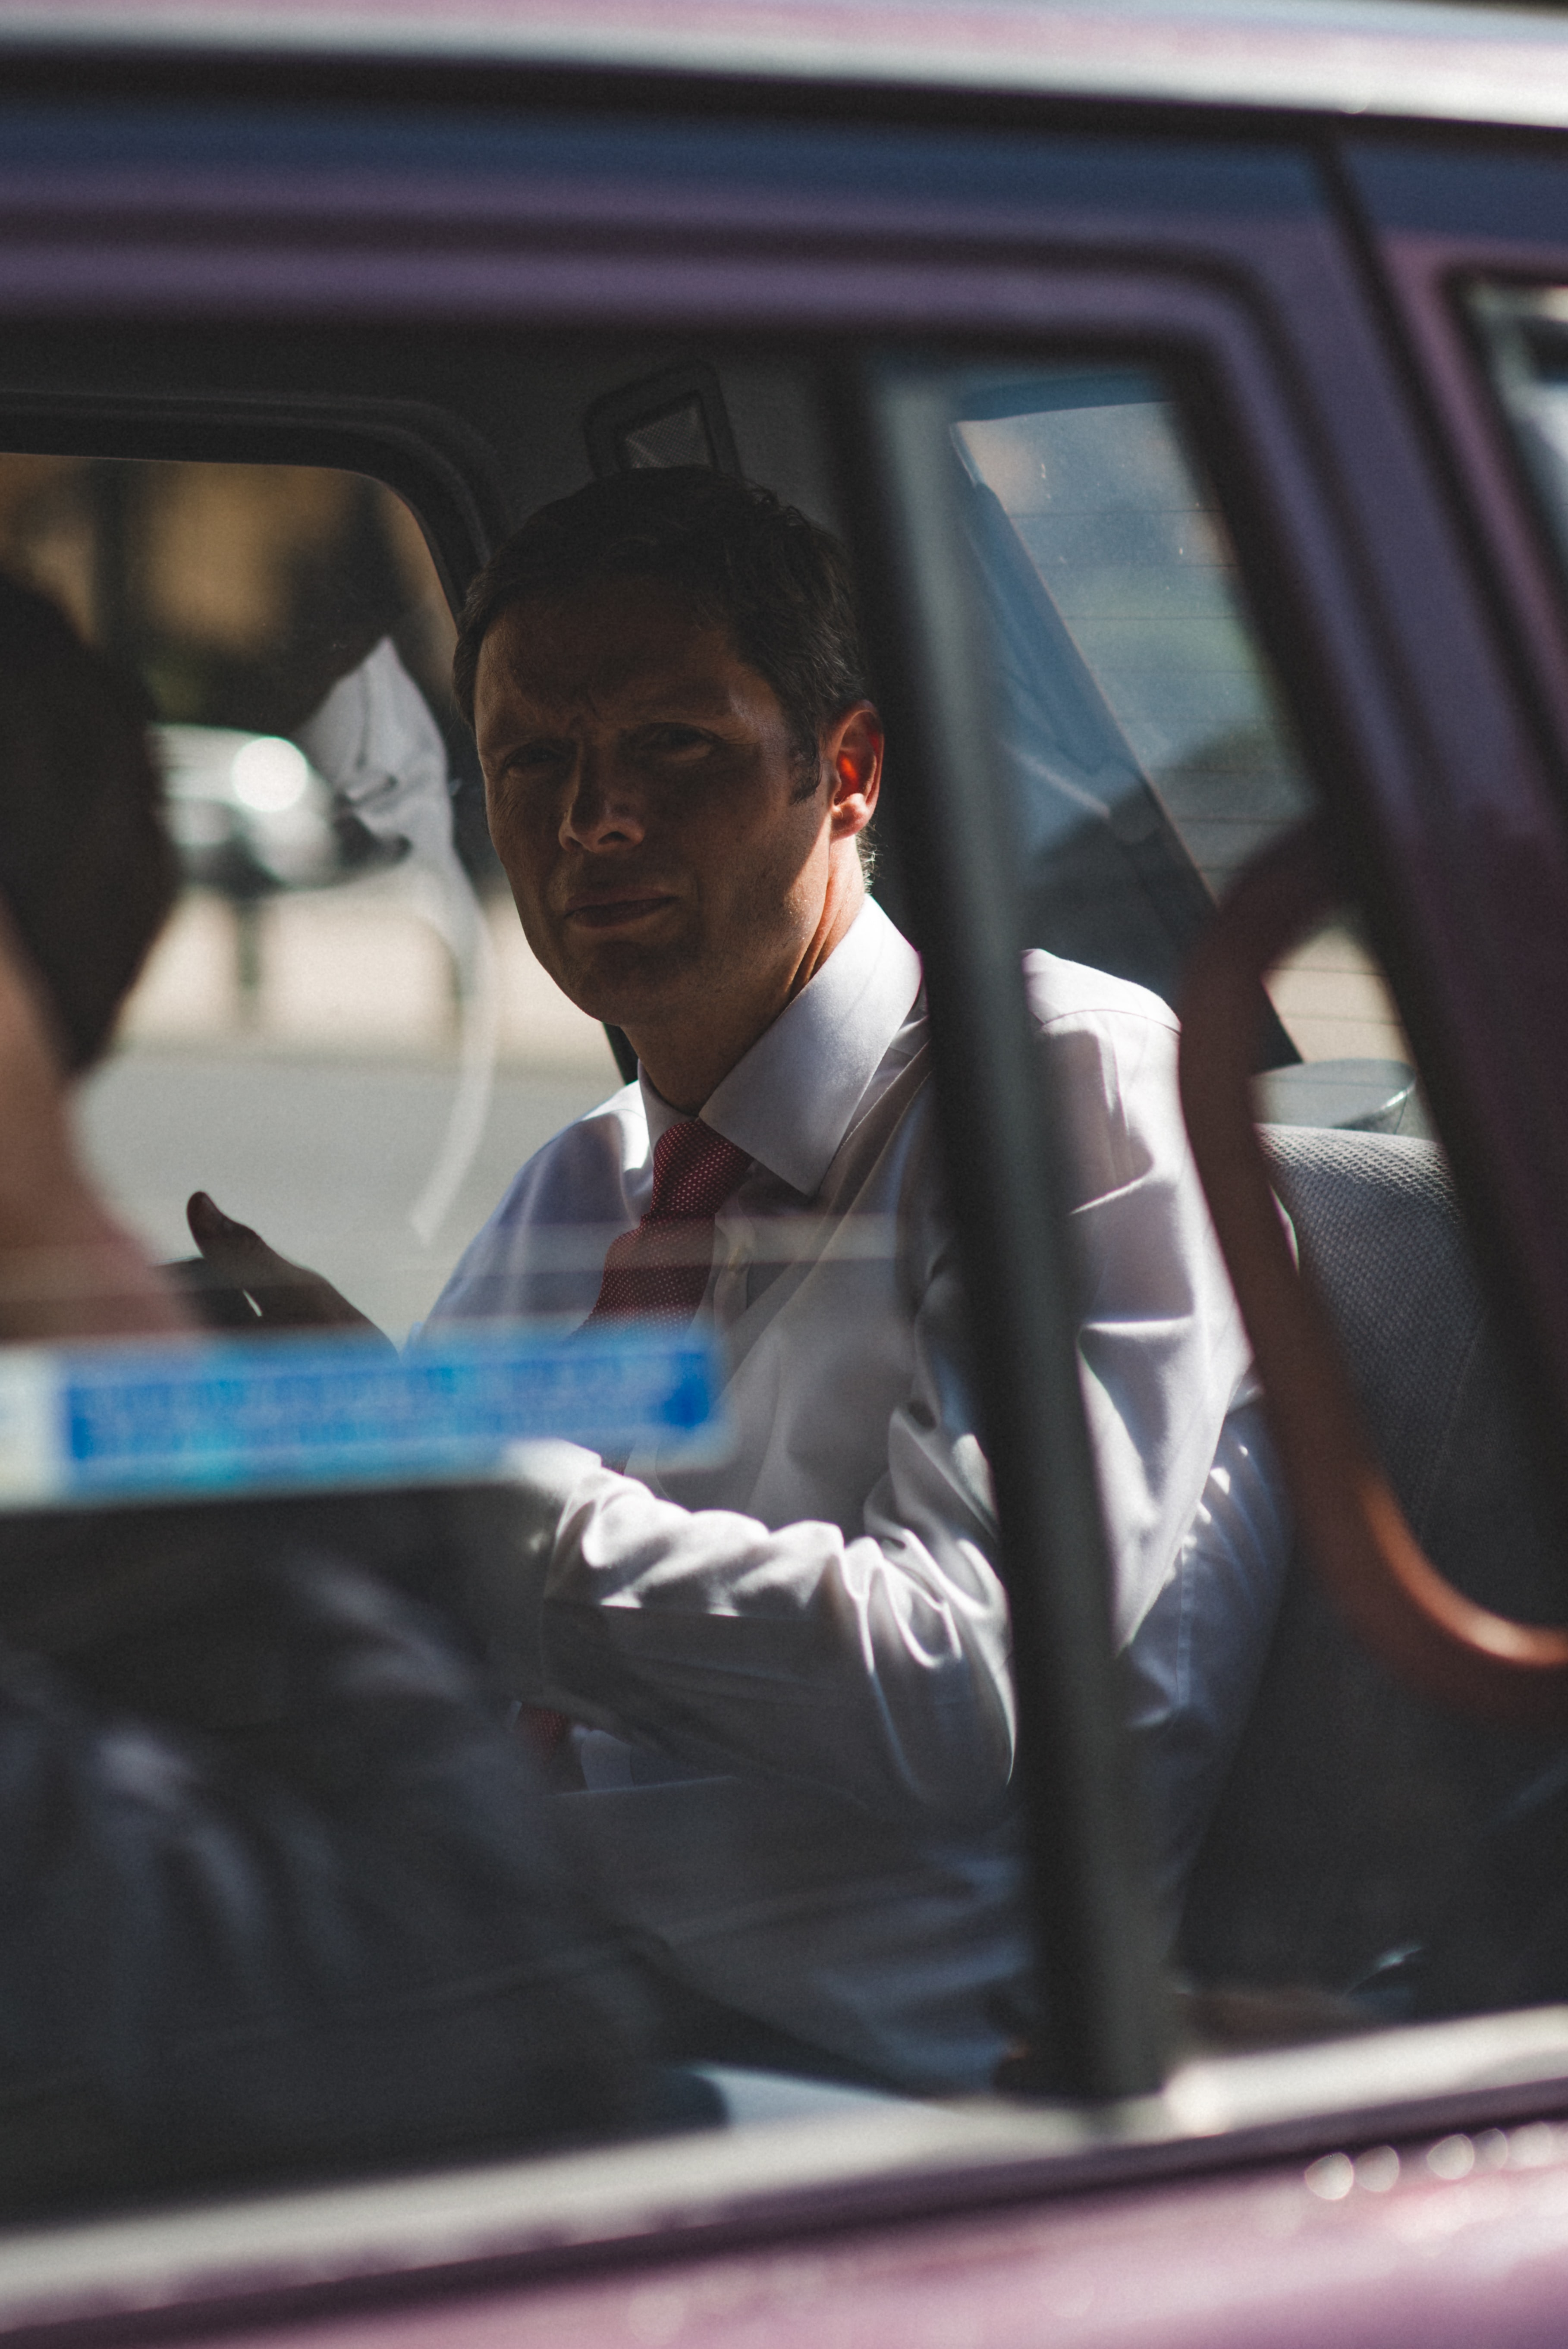 A man in a white shirt and a red tie in the back seat of a car